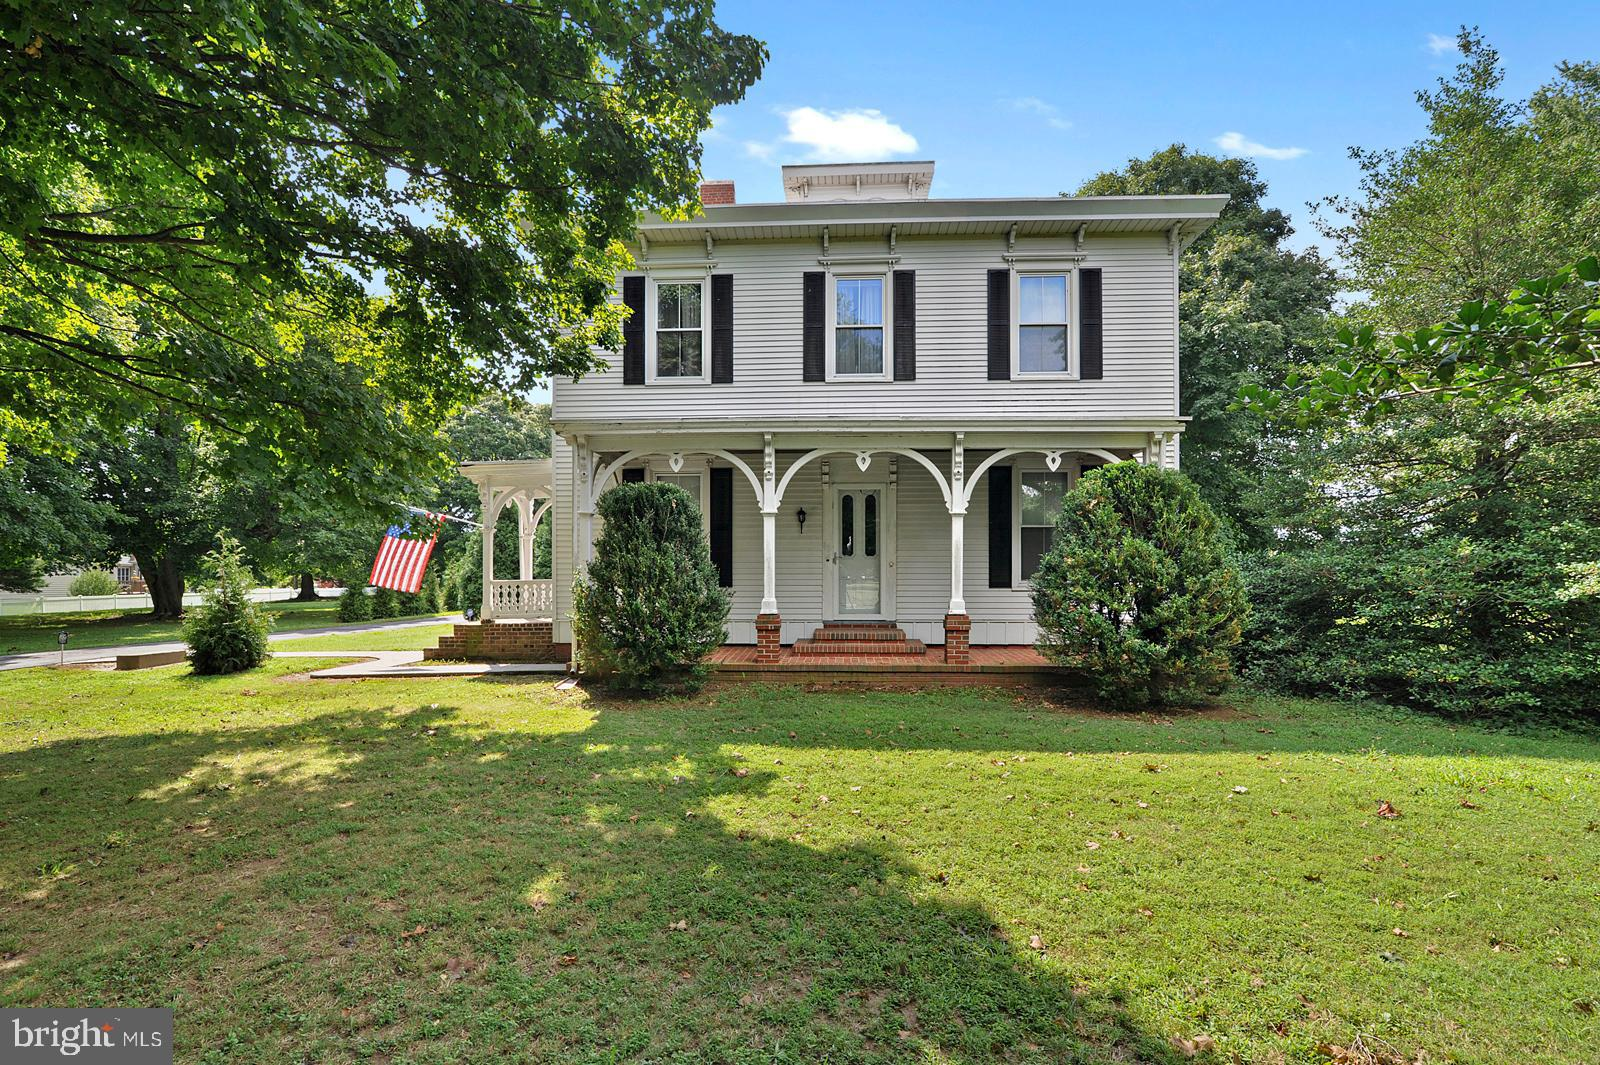 This Mansard Federal Style home is a one of a kind property that will take your breath away.  This 2.5 +/-  acre oasis is located close to everything but you would think you were in the middle of nowhere sitting on the rear deck.   The original home was constructed in 1850 and there have been obvious additions and updates since.  Featuring 4 spacious bedrooms, 2 Full baths and plenty of room to reconfigure for additional beds/bathrooms.  The property also includes two large outbuildings with unlimited potential and endless parking.  You have to see all this home offers to believe it.